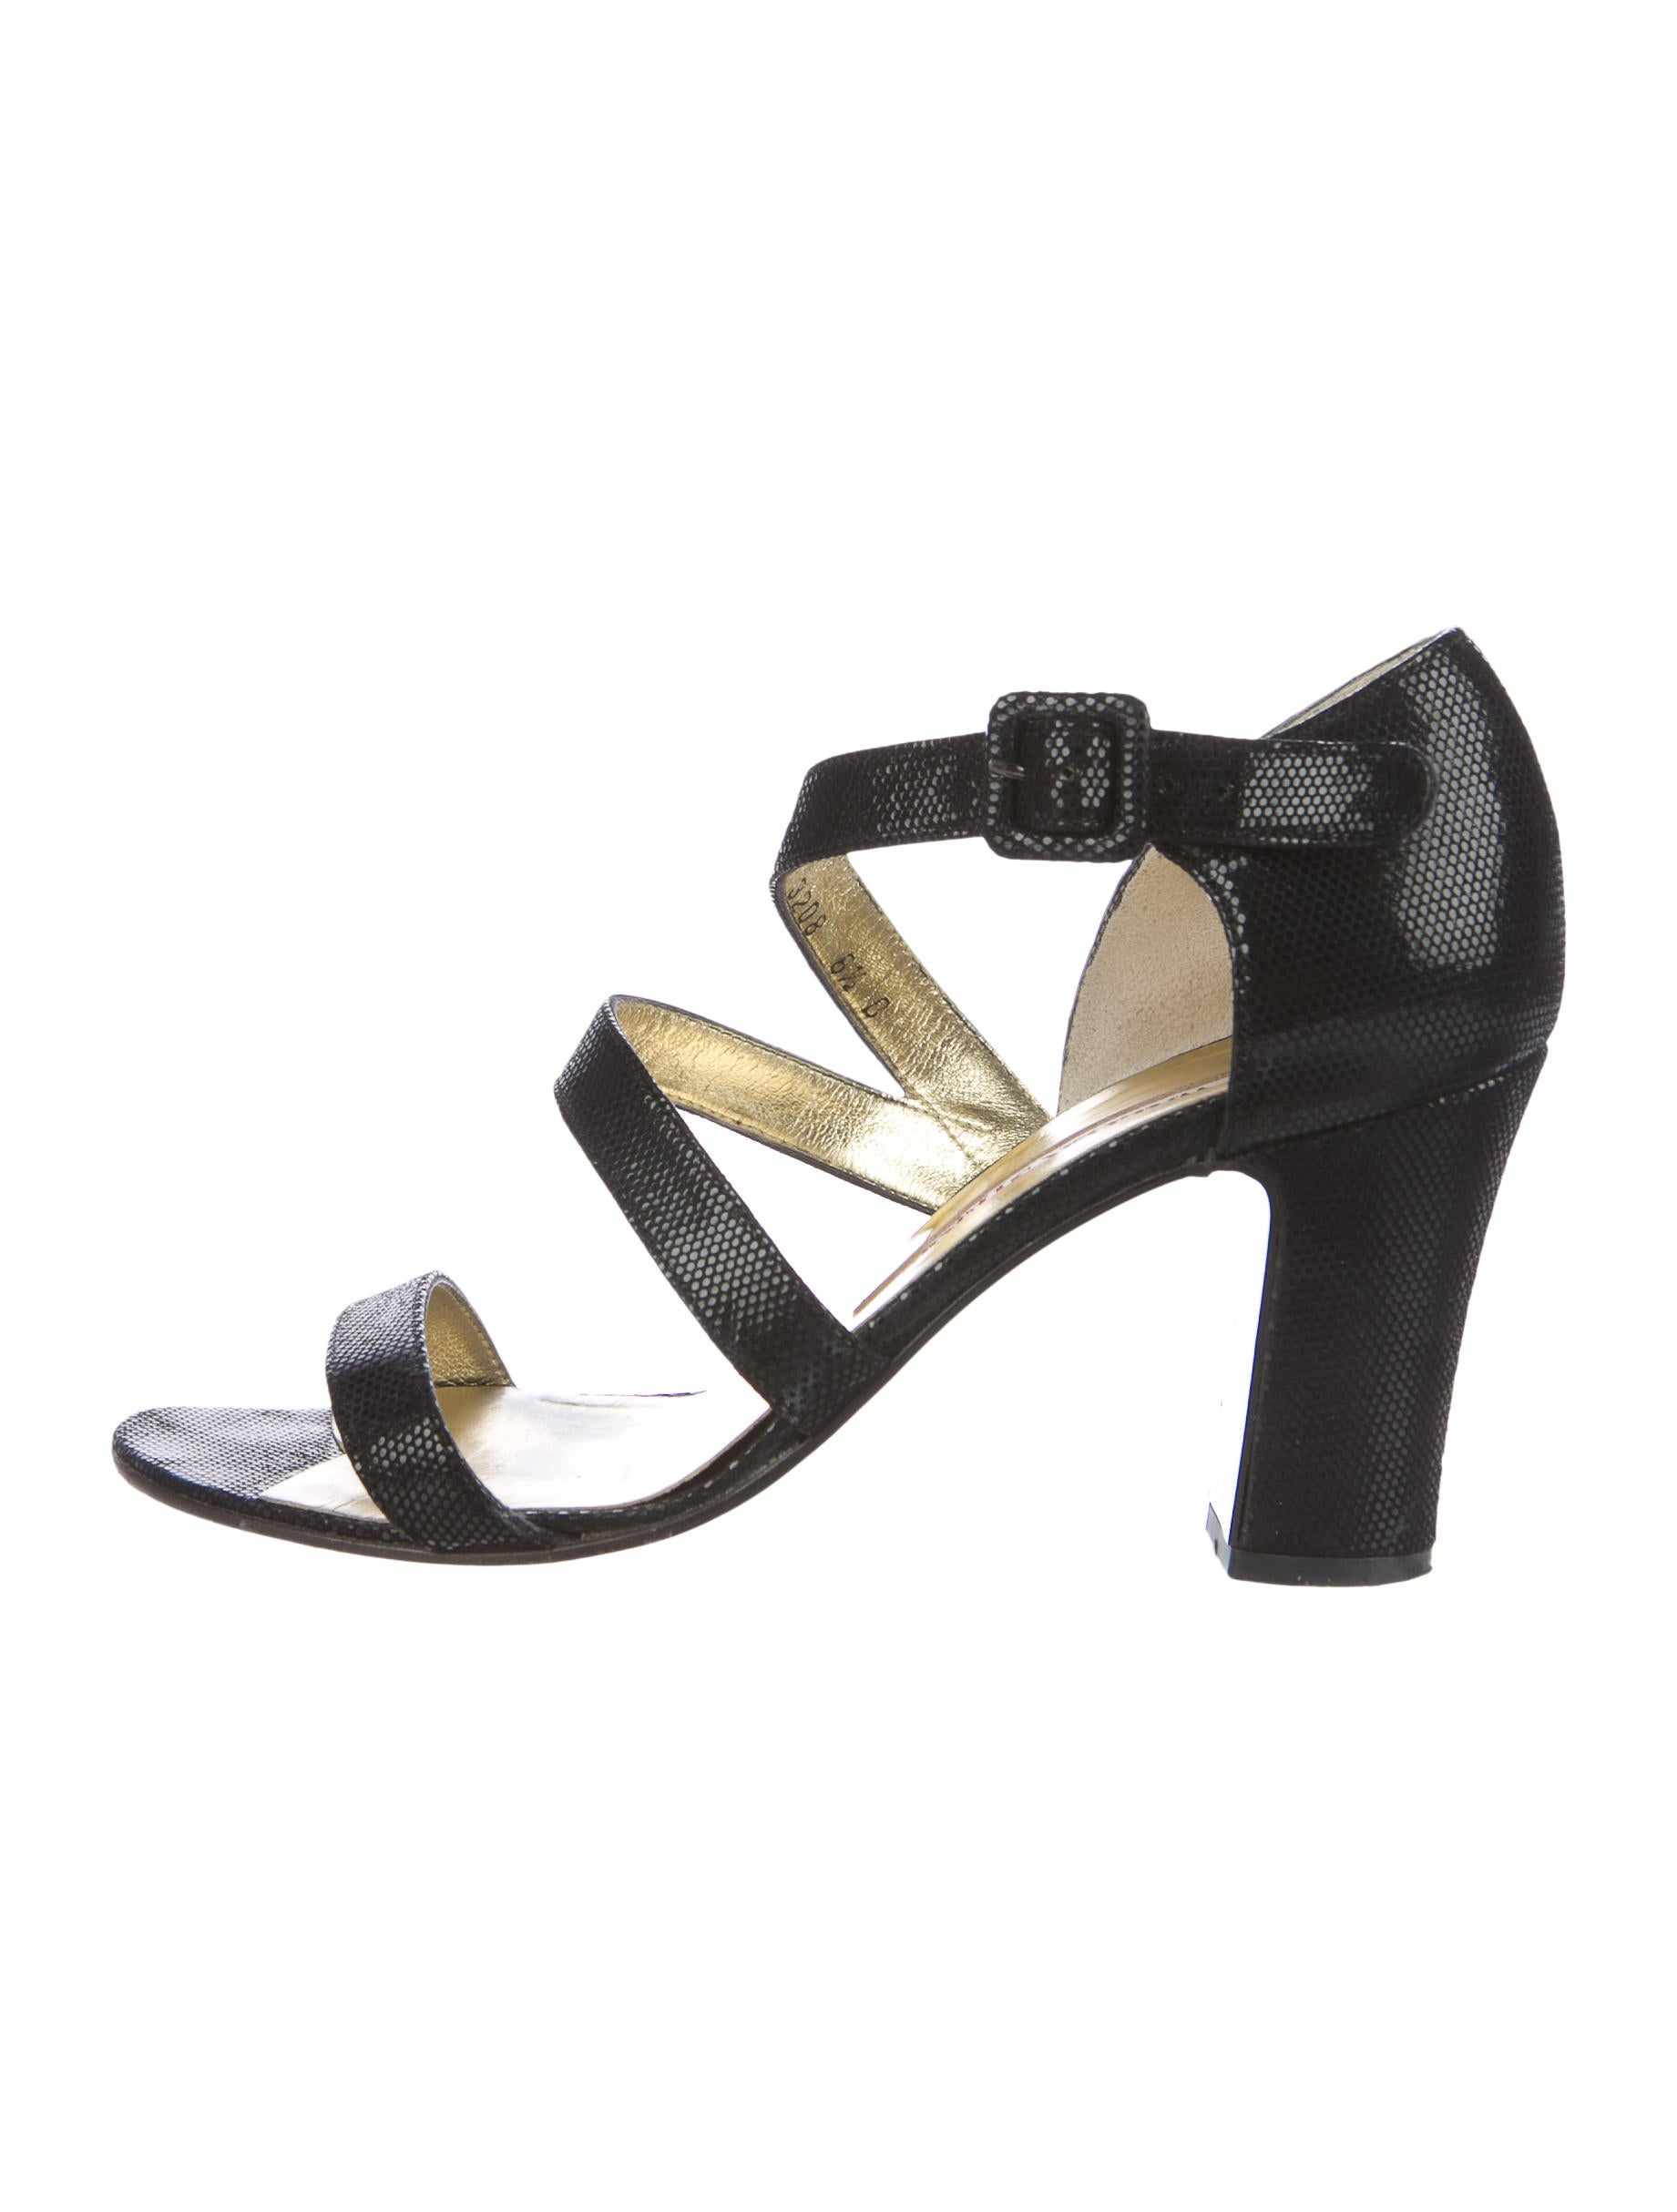 Walter Steiger Leather Multistrap Sandals outlet high quality buy cheap Inexpensive collections cheap price tumblr sale online cheap wholesale XwzhY68